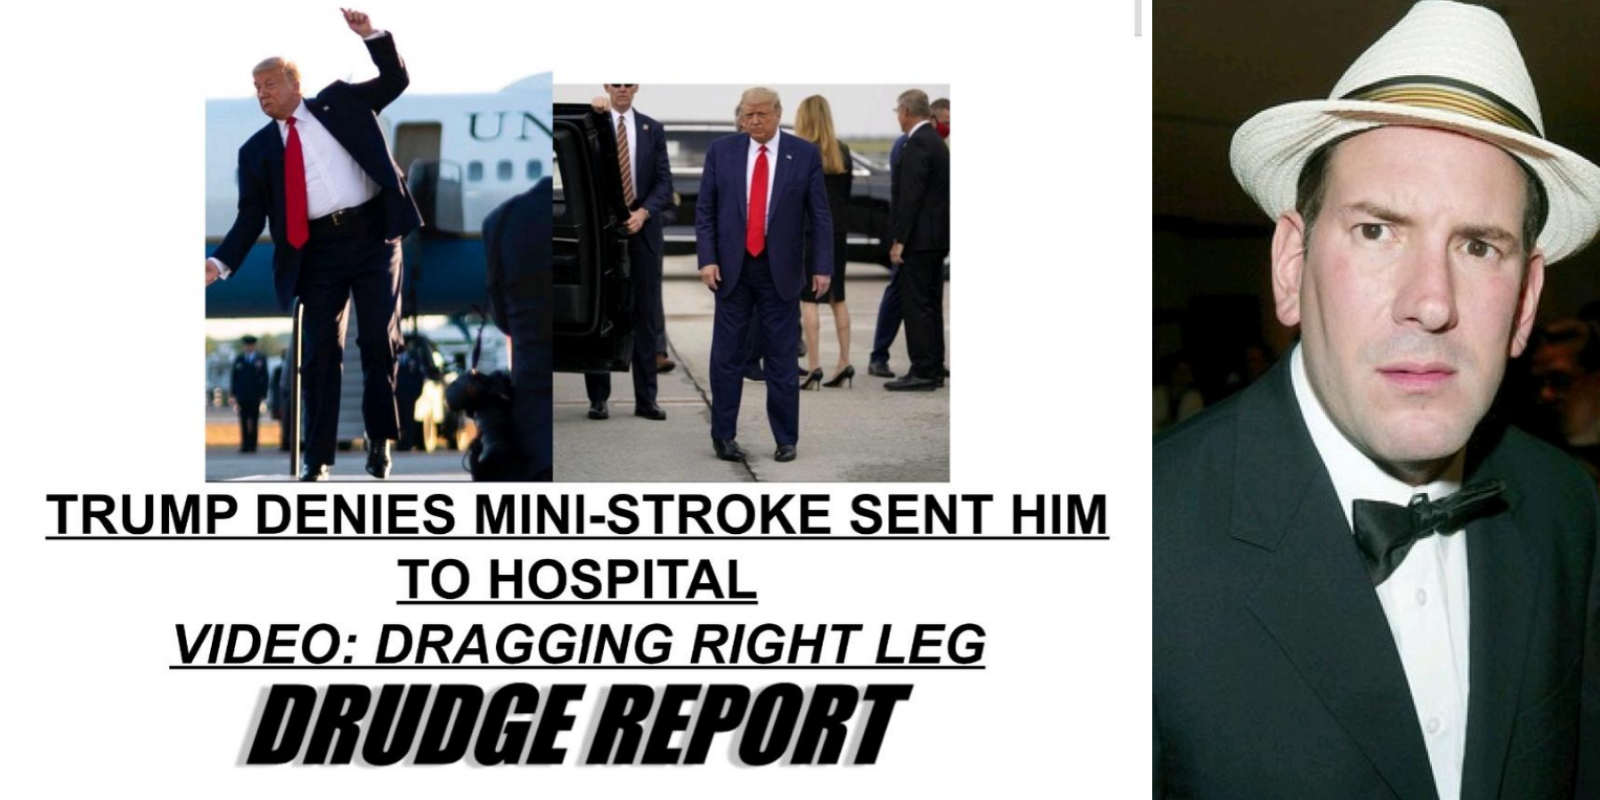 The Drudge Report has become an embarrassing Never-Trump cringe fest